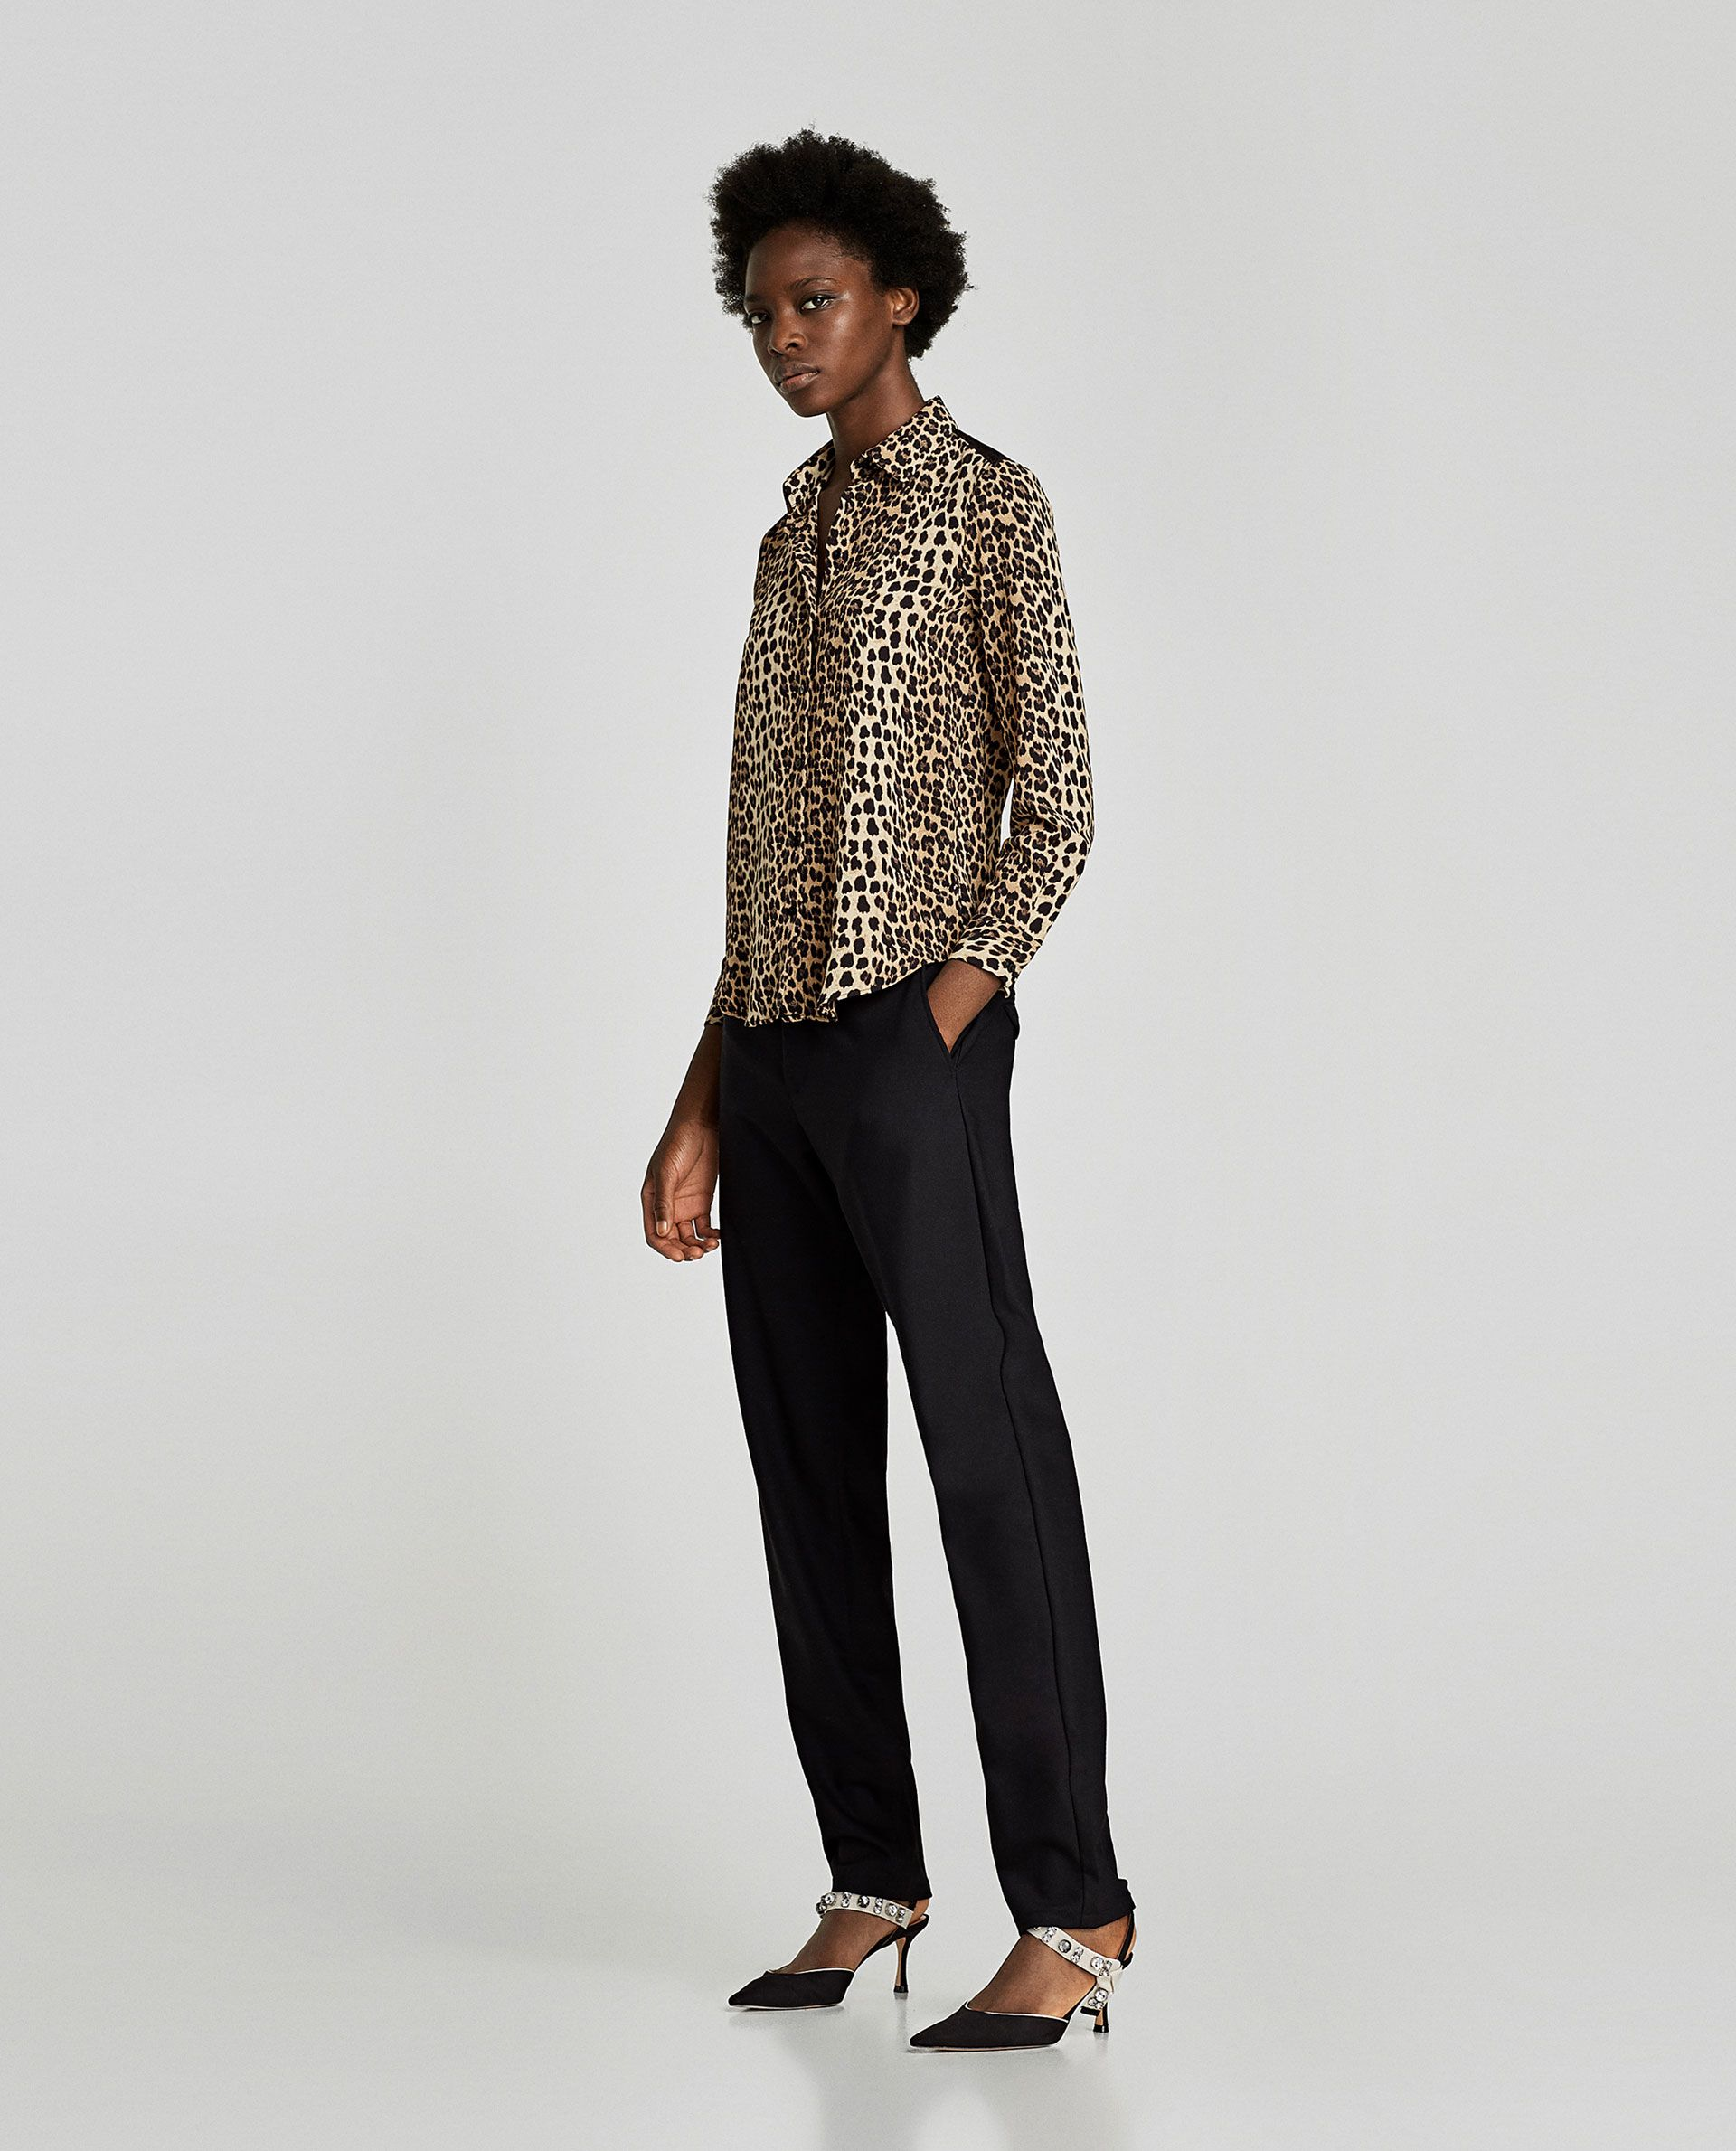 11832eb0 Image 1 of ANIMAL PRINT BLOUSE WITH LACE from Zara | Fashion For the ...